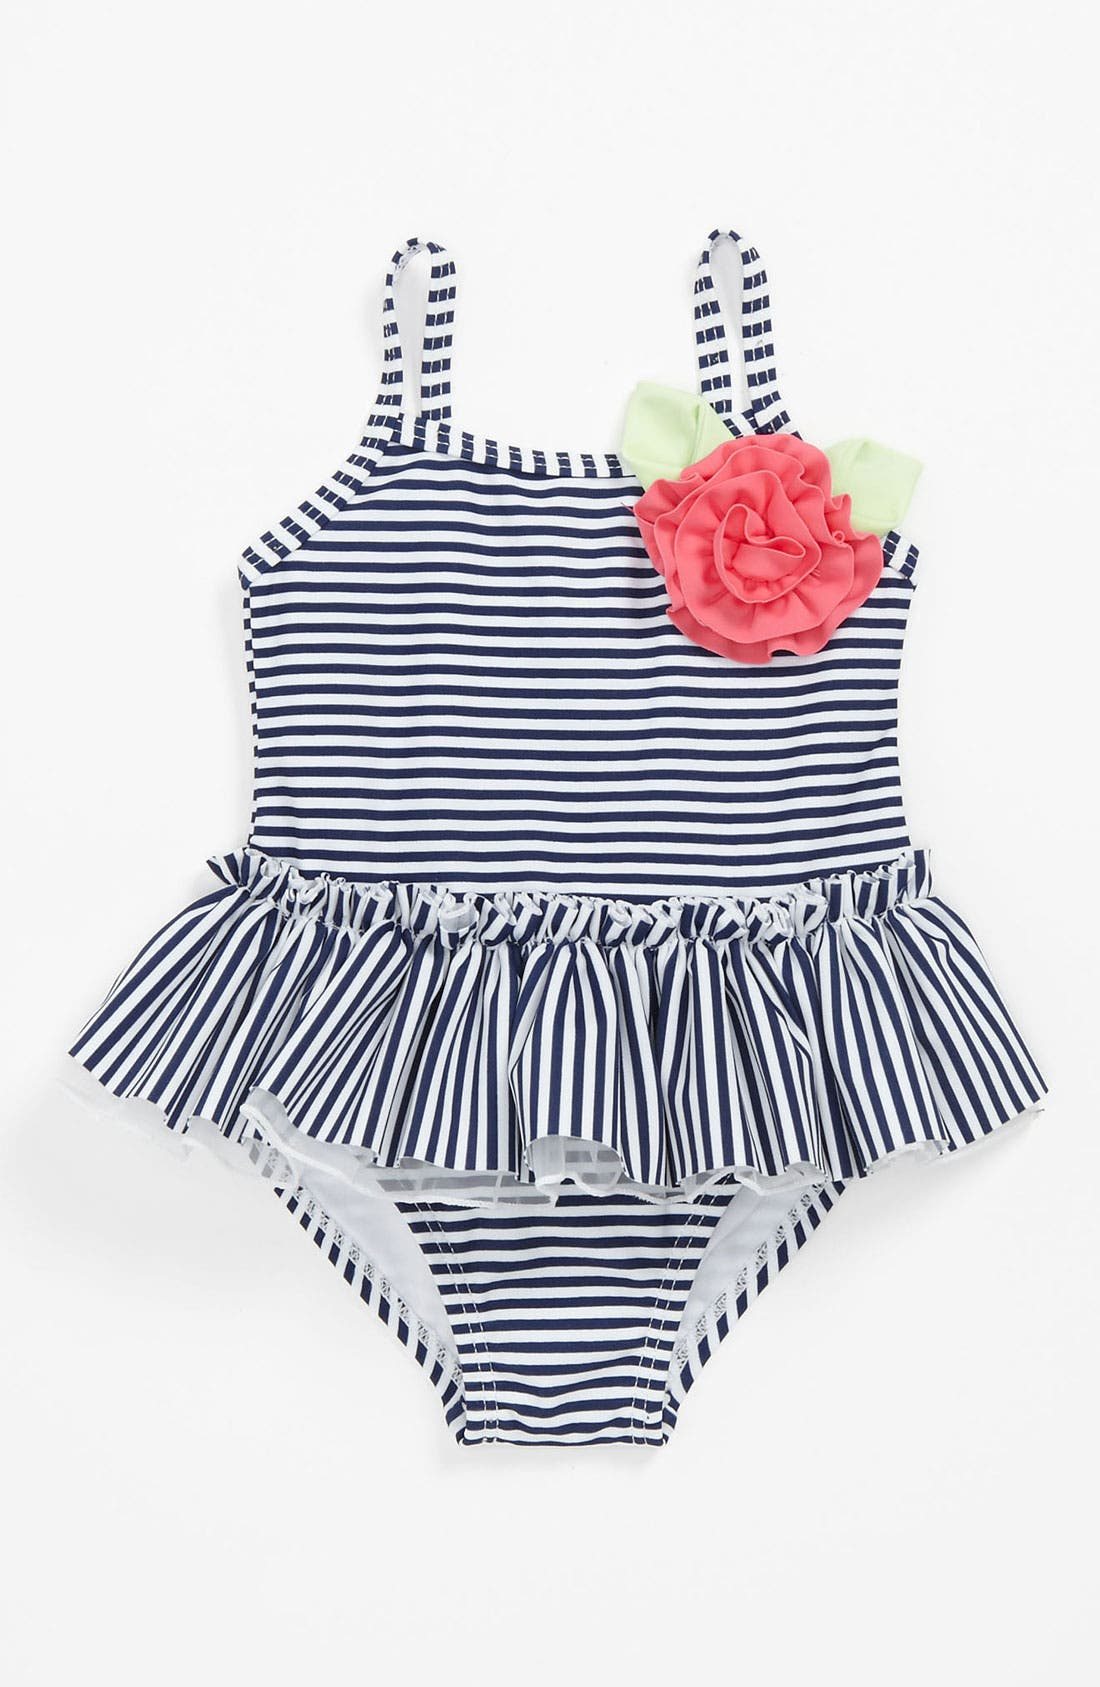 Main Image - Little Me Stripe One Piece Swimsuit (Baby)